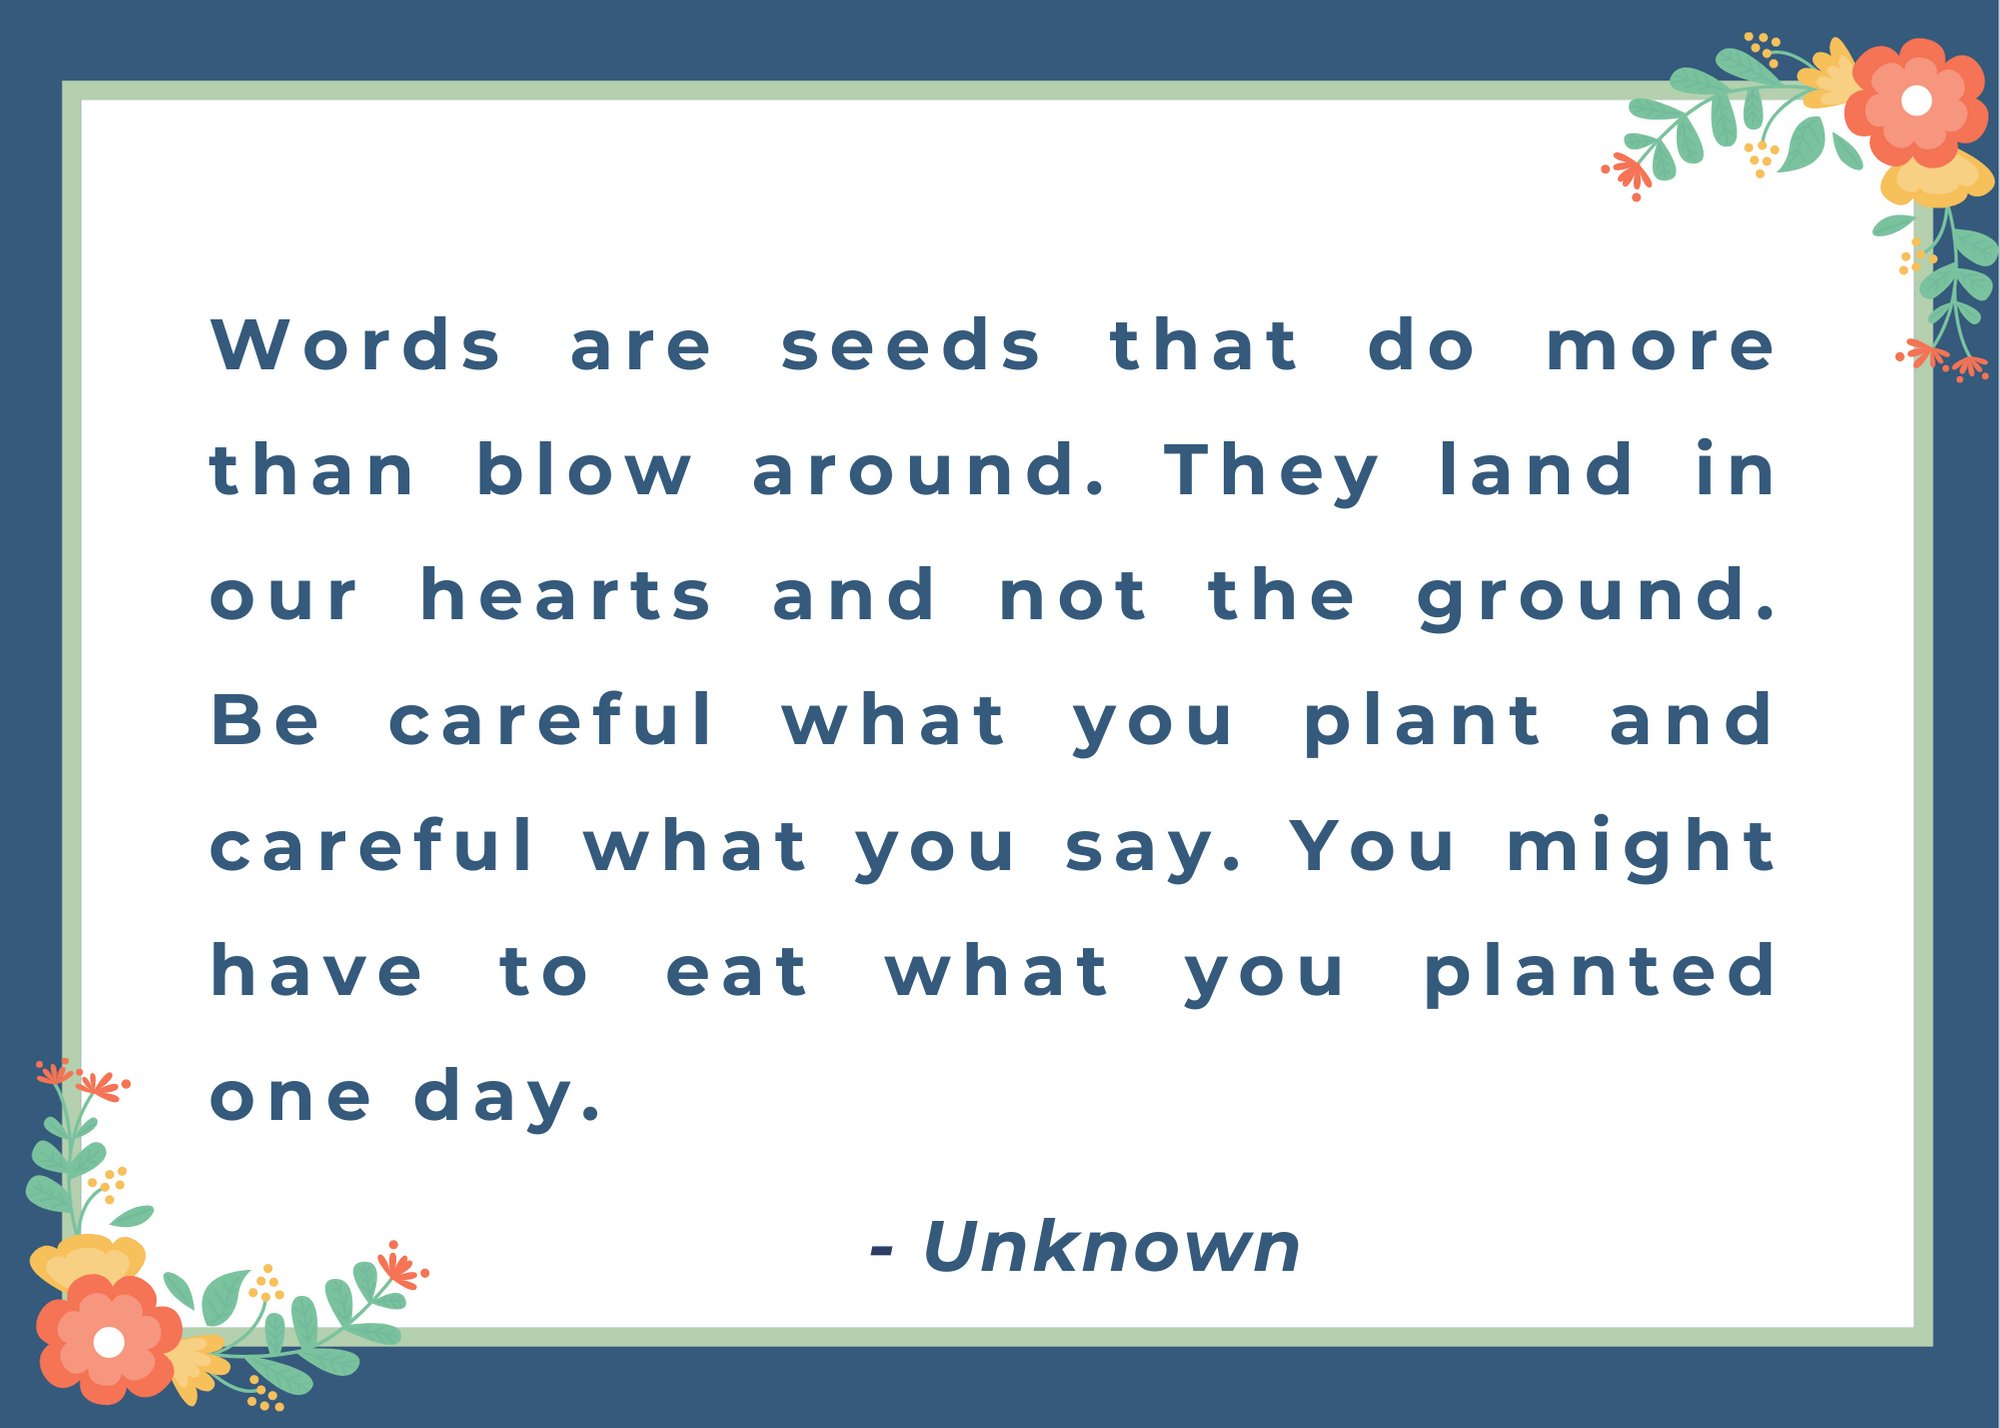 Words are seeds that do more than blow around. They land in our hearts and not the ground. Be careful what you plant and careful what you say. You might have to eat what you planted one day.